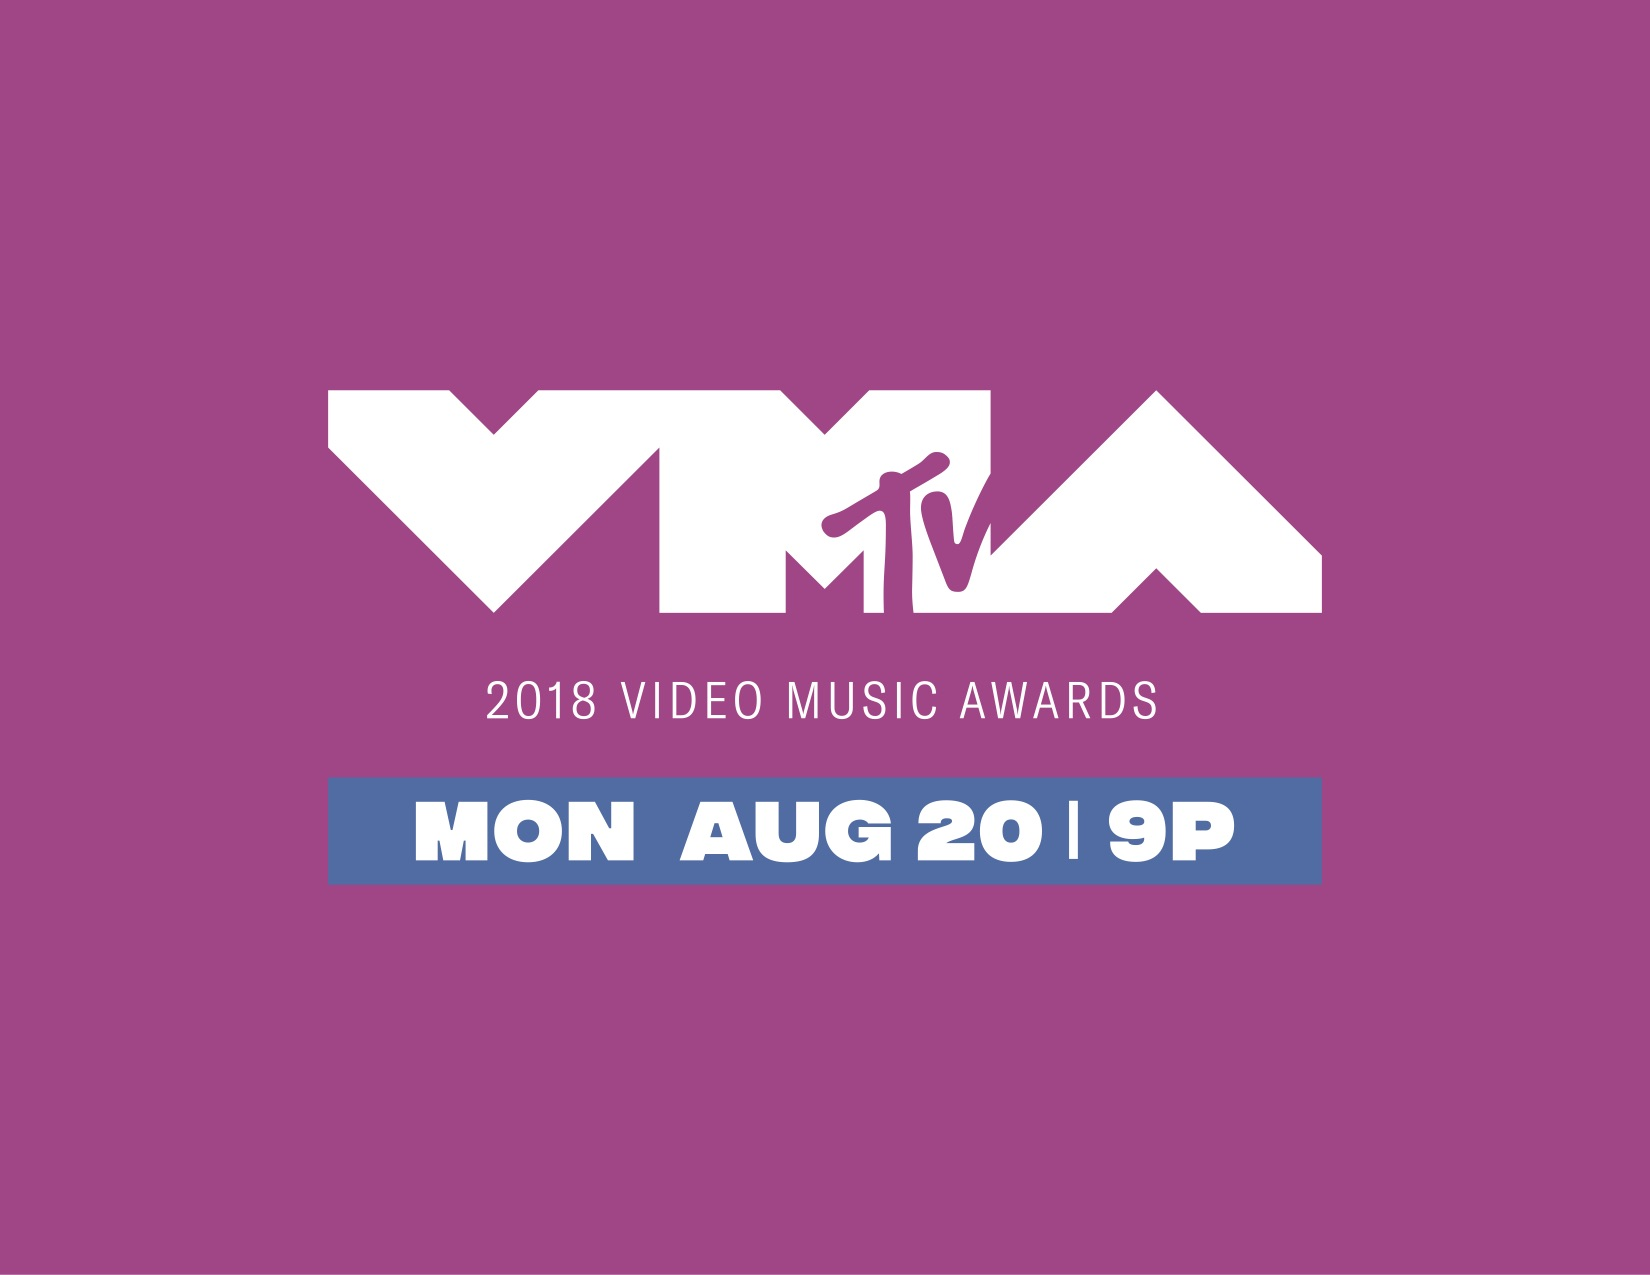 """cd151023ee1511 CARDI B AND THE CARTERS LEAD NOMINATIONS FOR THE 2018 """"VMAS"""""""